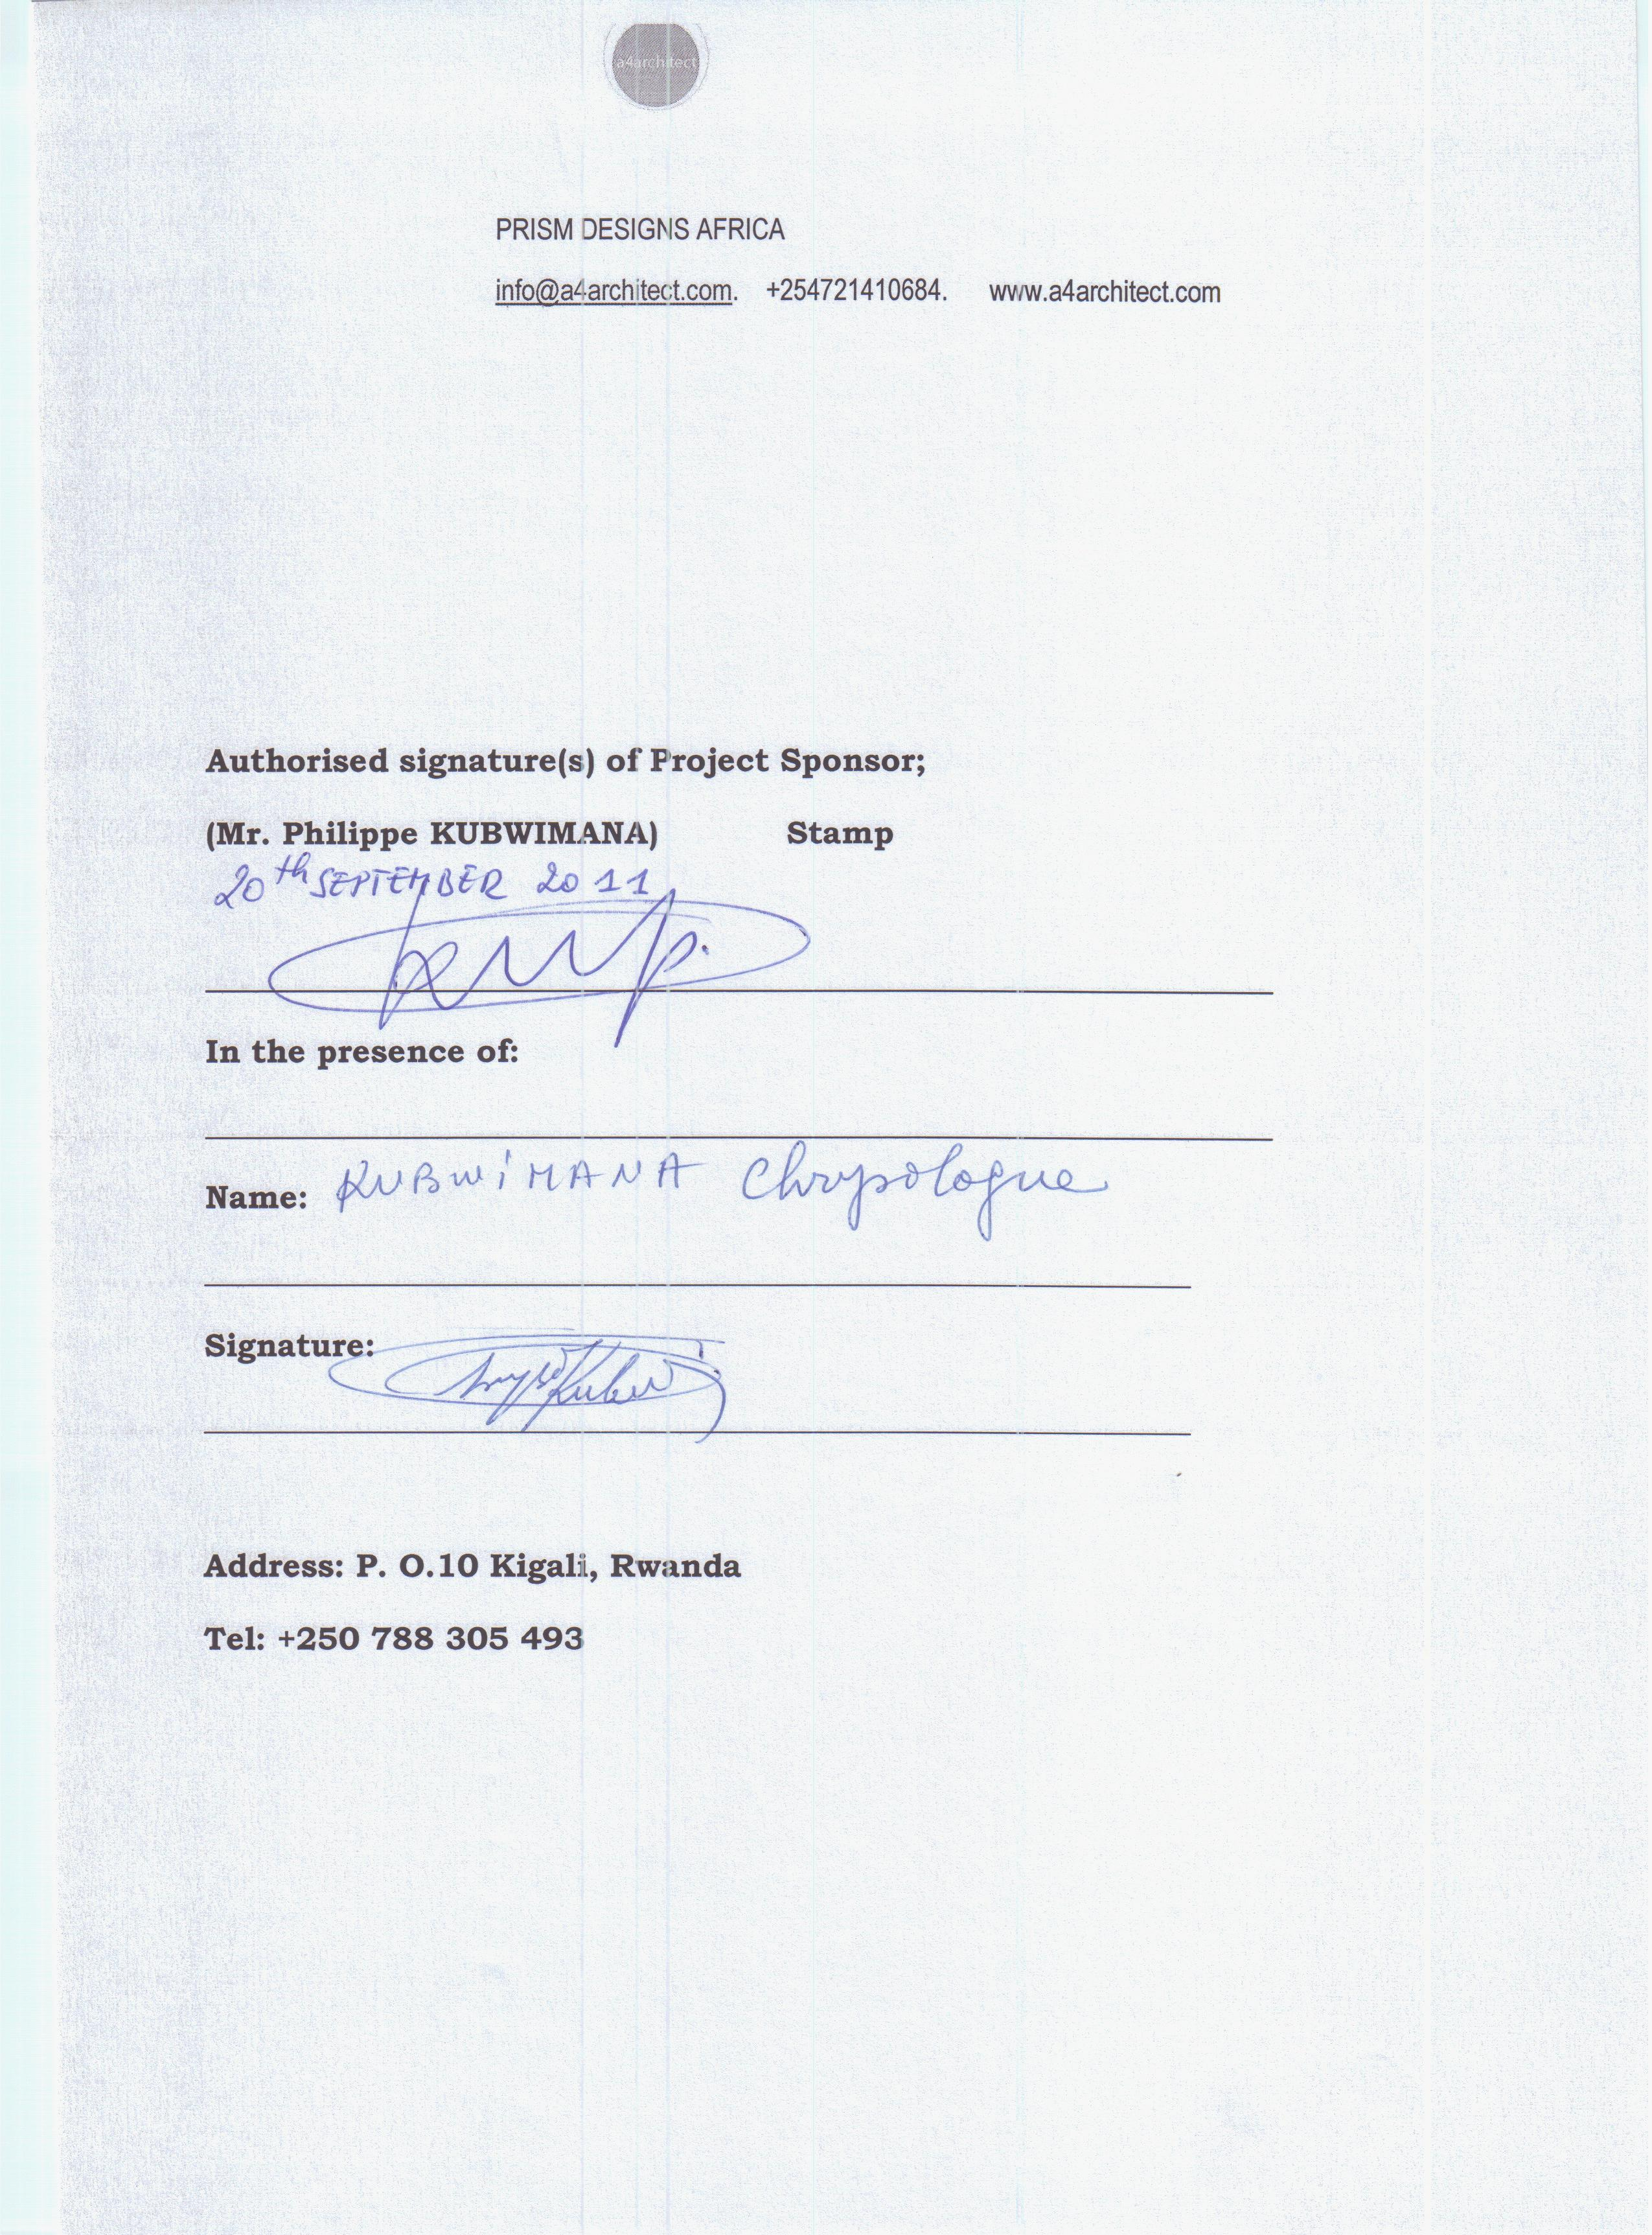 signed agreement Prism Designs Africa 004